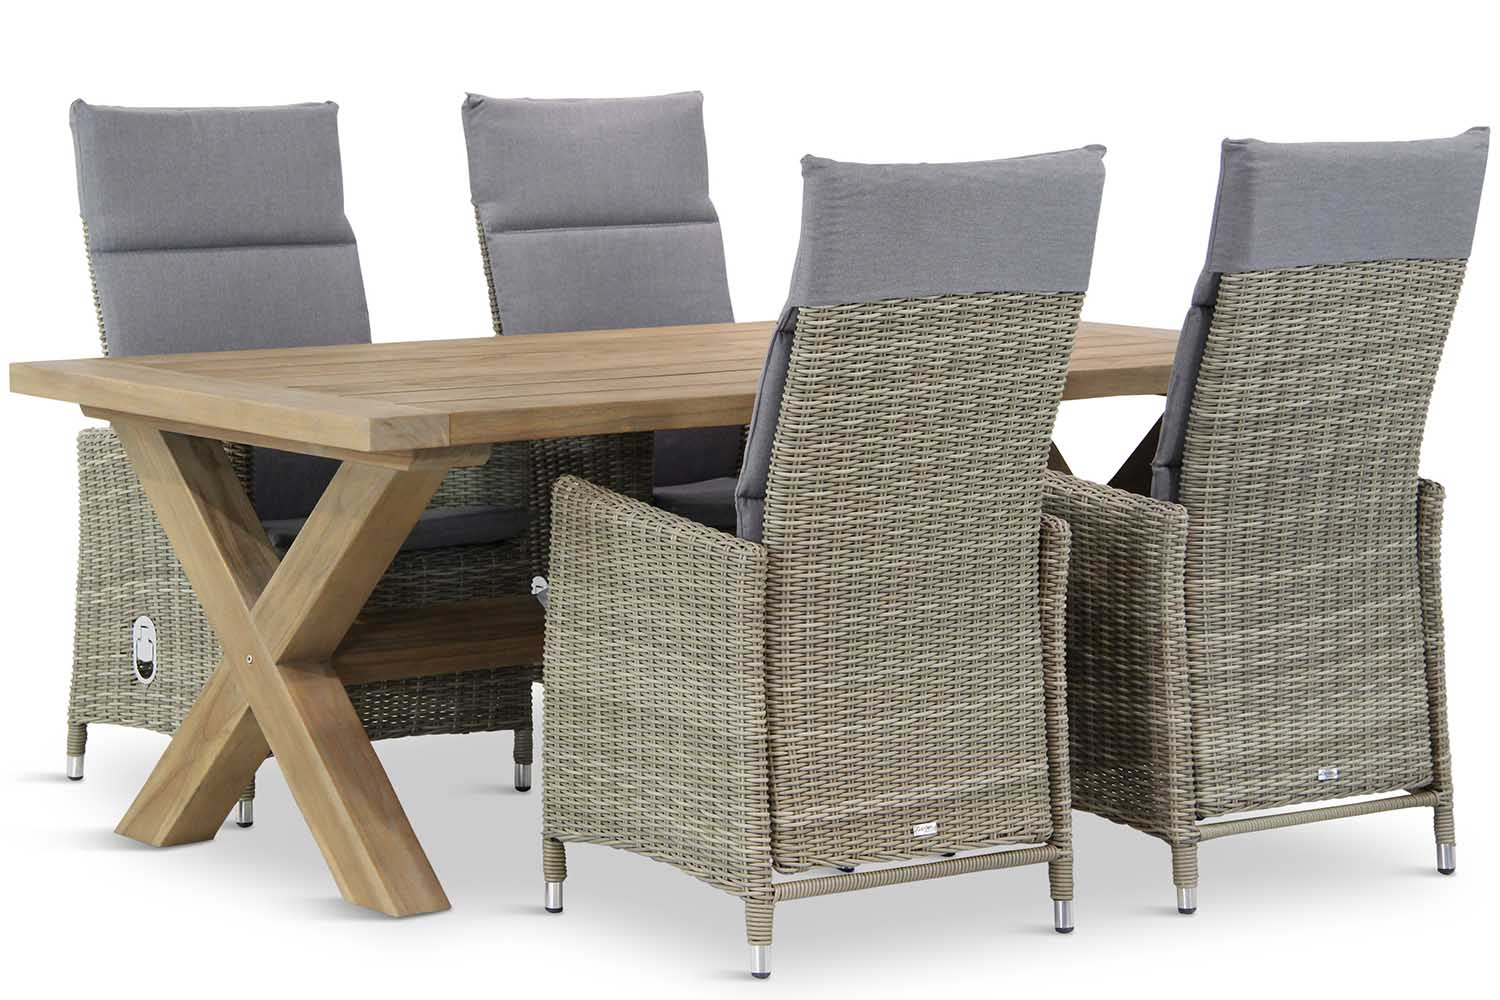 Wicker Garden Collections Madera/Oregon 200 cm dining tuinset 5-delig